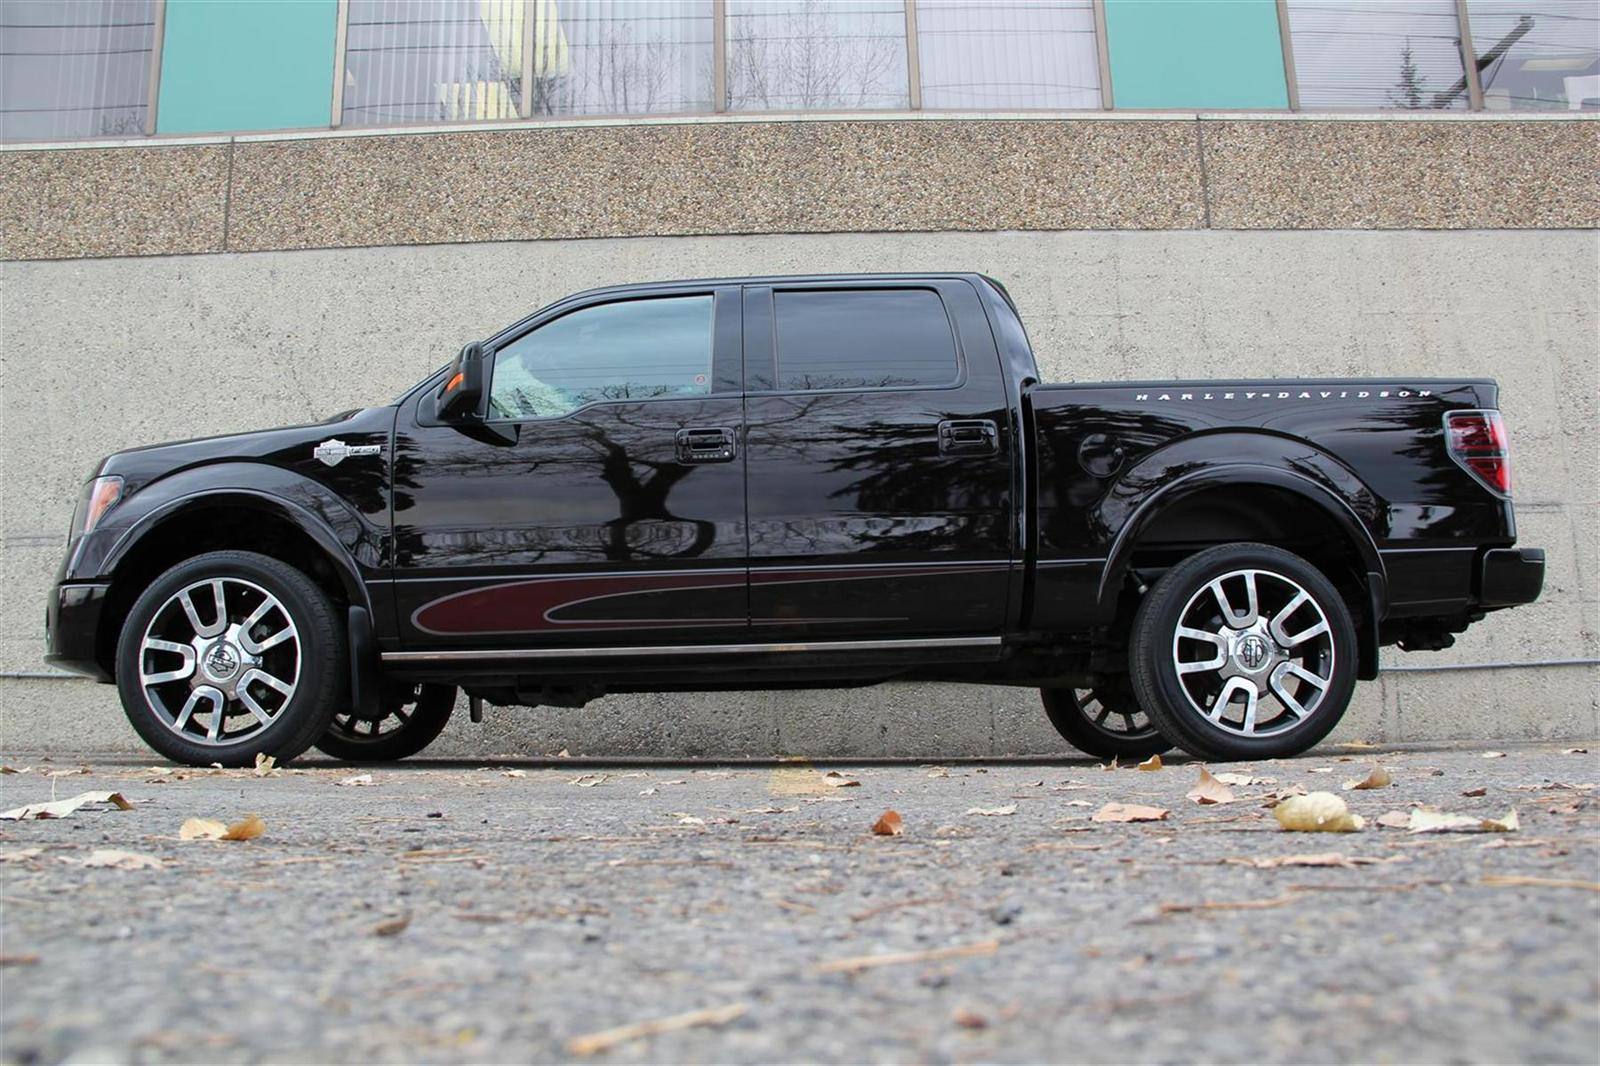 2010 Ford F150 Harley Davidson Edition Super Crew Vehicle